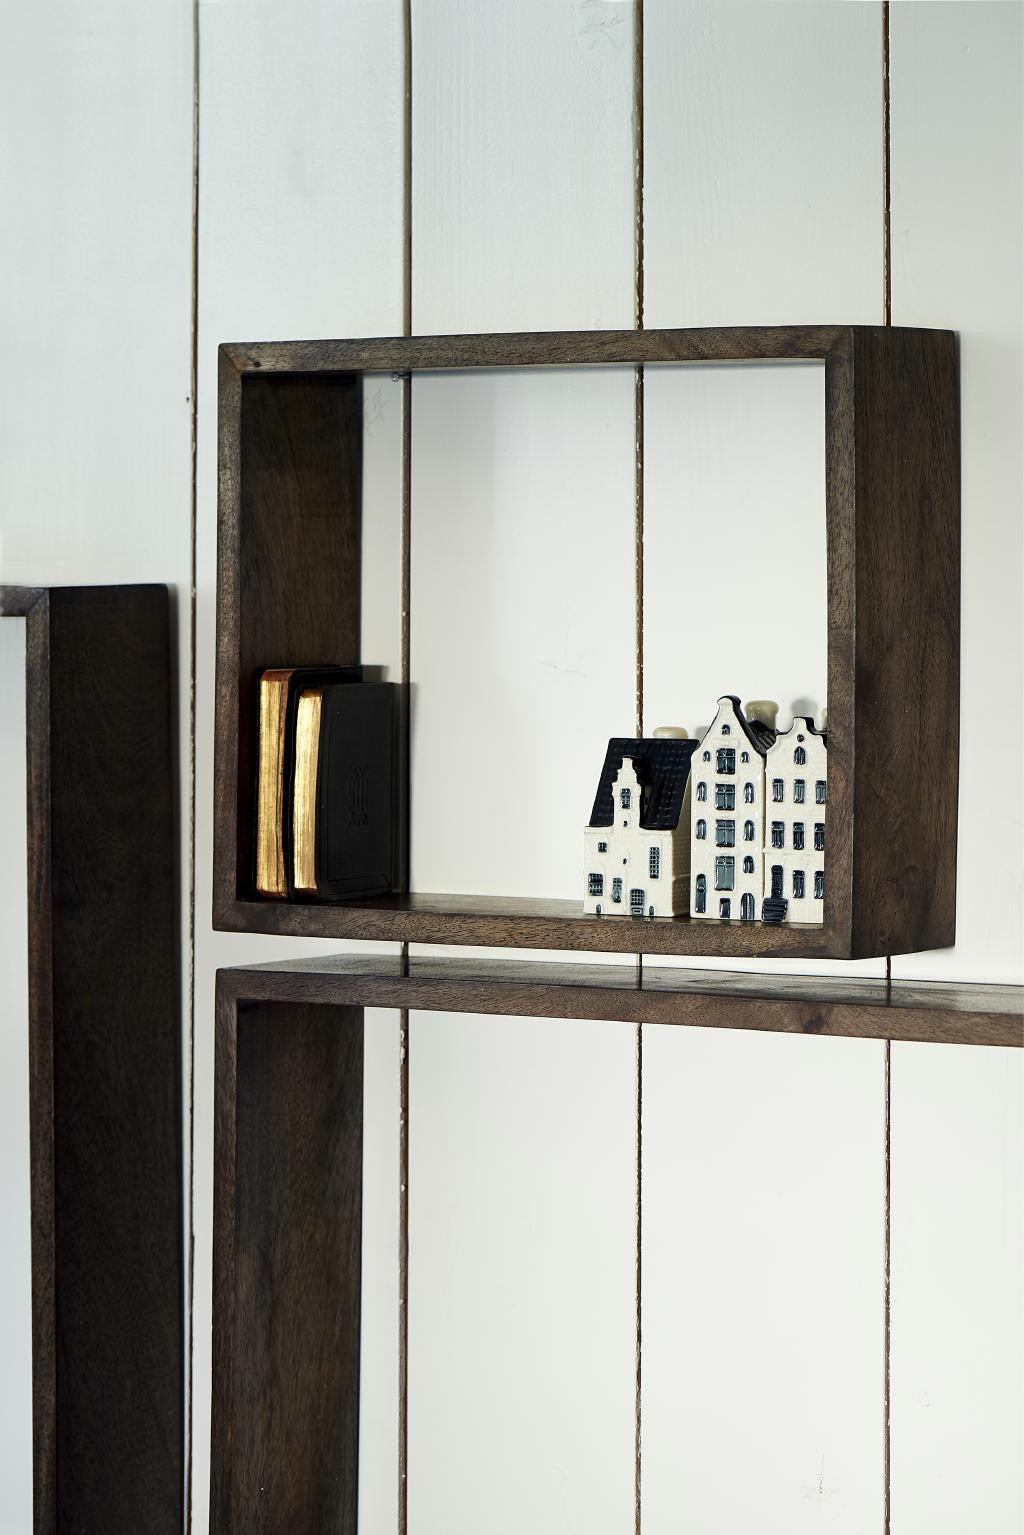 Oxford Wall Shelf S / Rivièra Maison